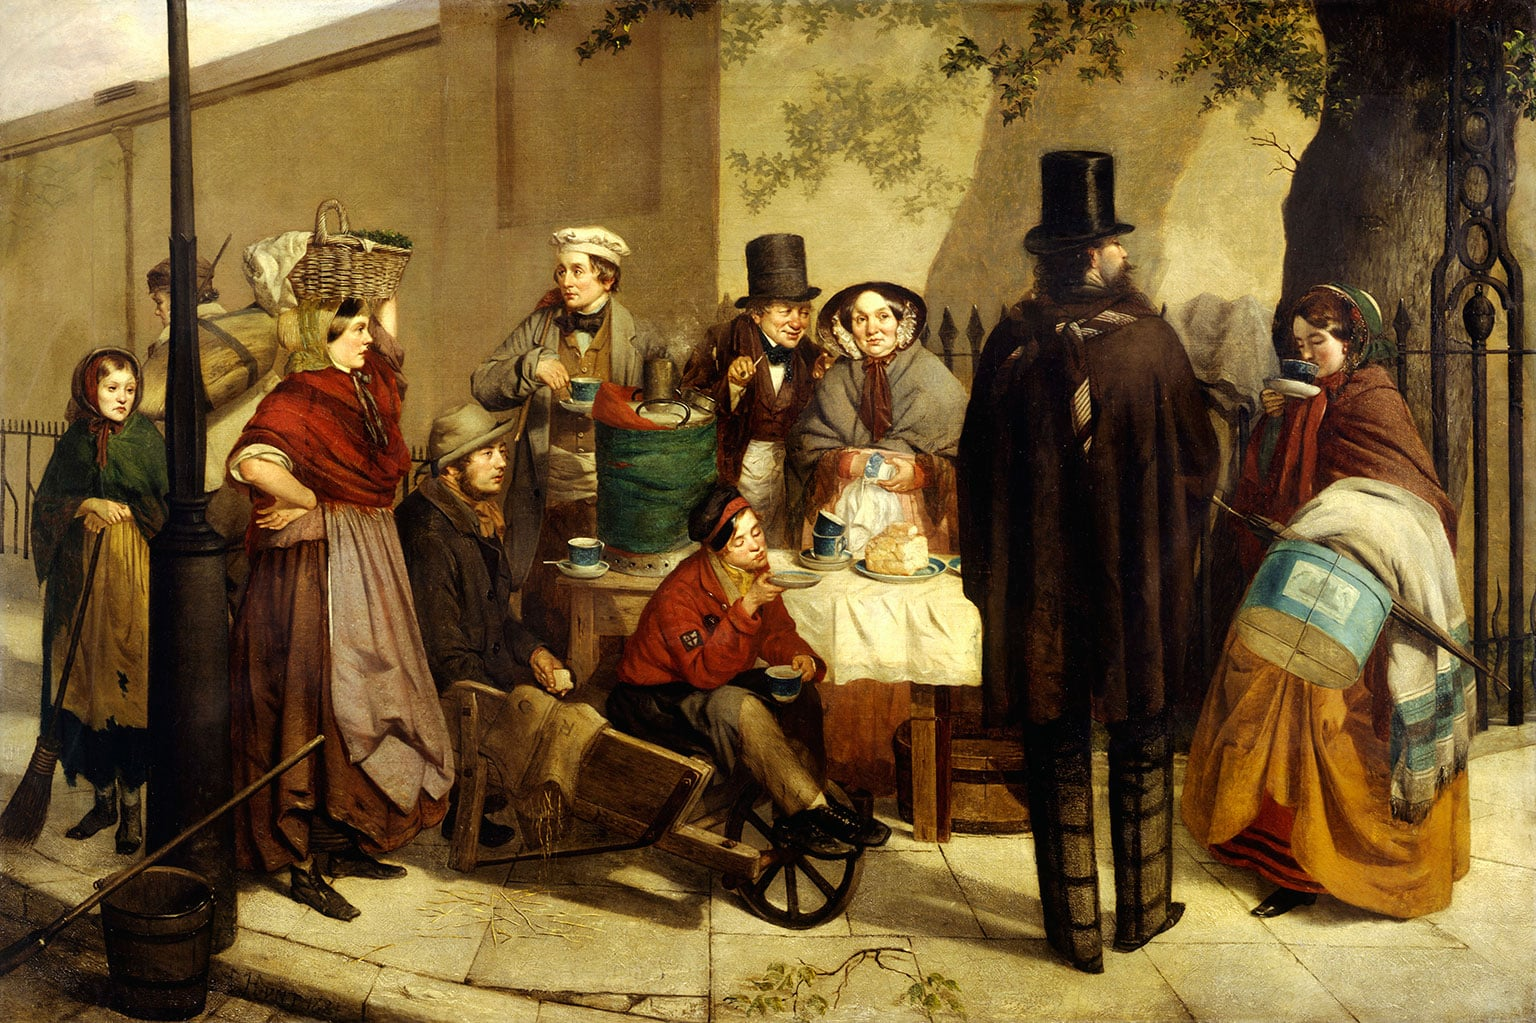 2. Robert Dowling, Breakfasting Out, 1859 - Museum of London